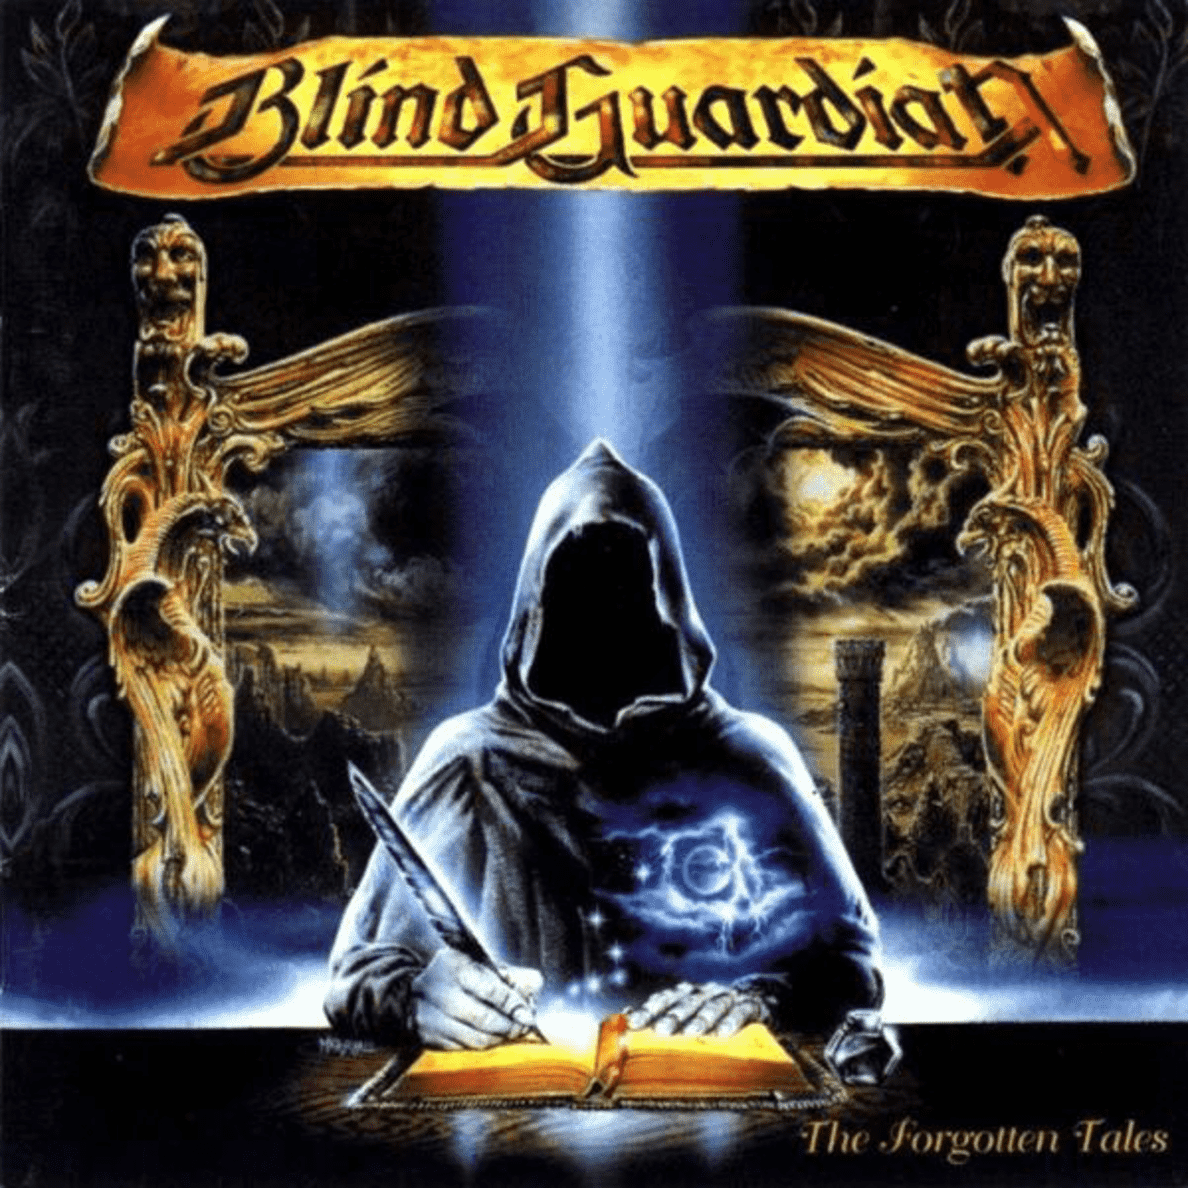 The Forgotten Tales (Remastered 2012) Blind Guardian auf CD